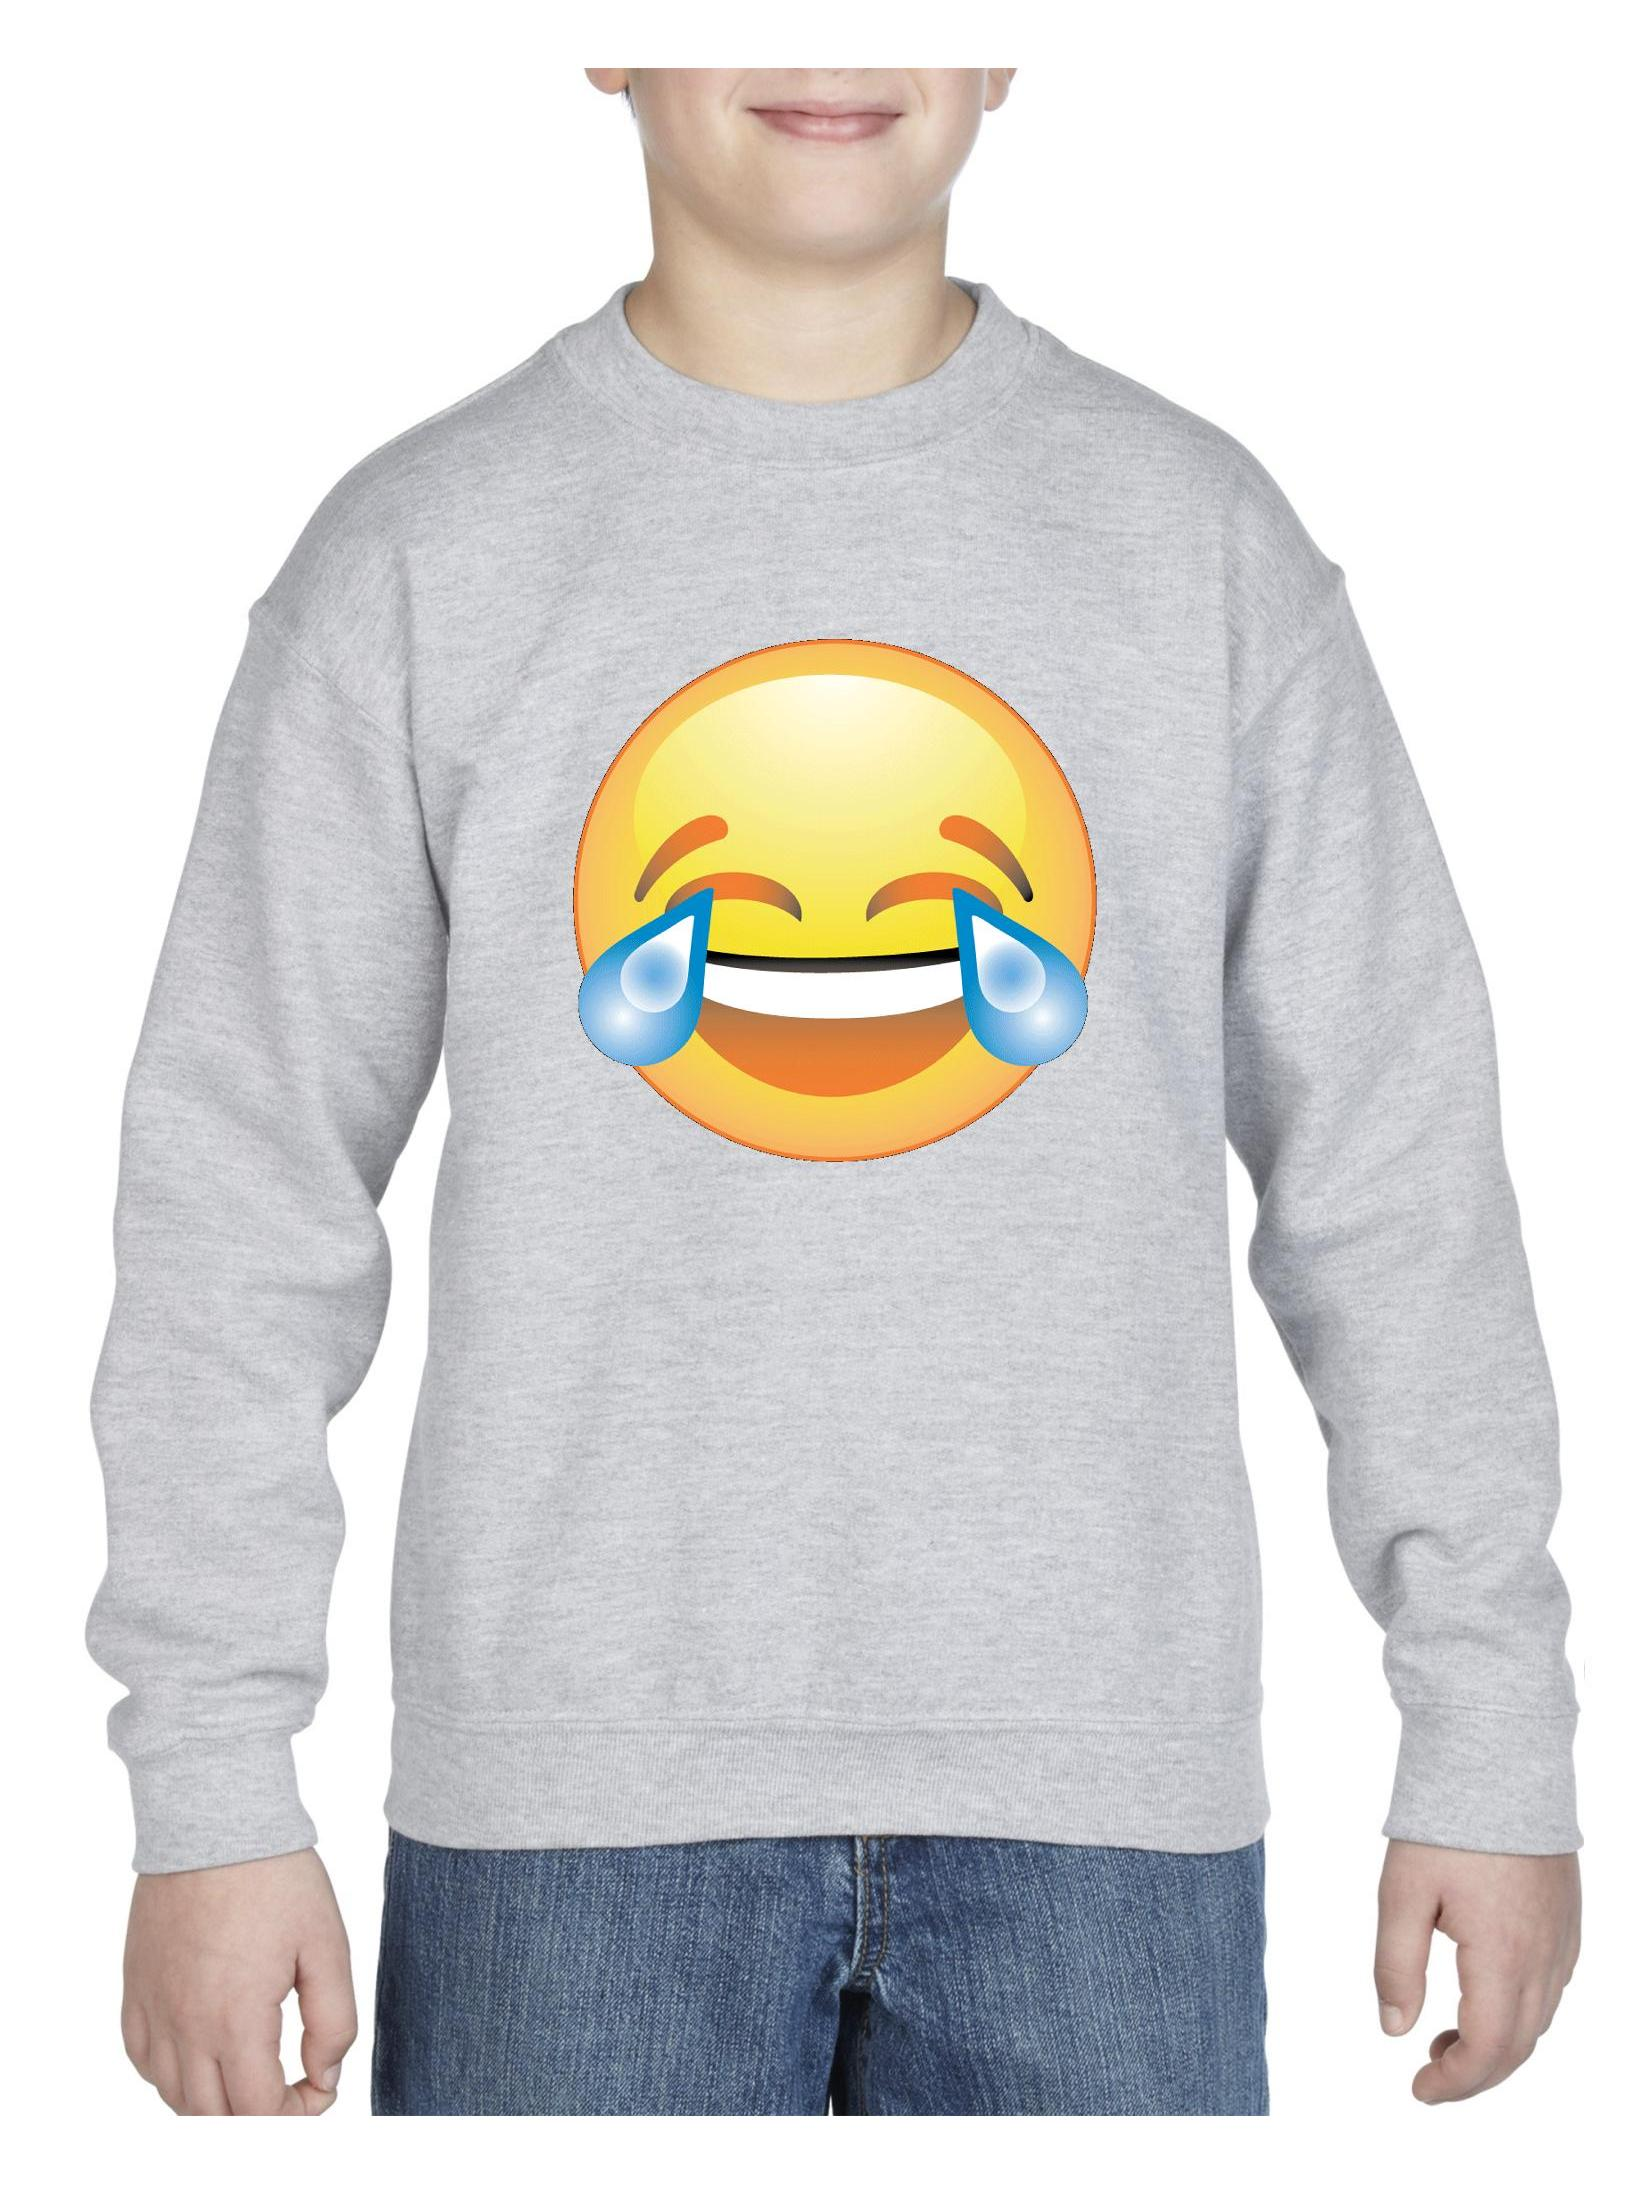 Emoji Laughing Tears Unisex Youth Crewneck Sweatshirt